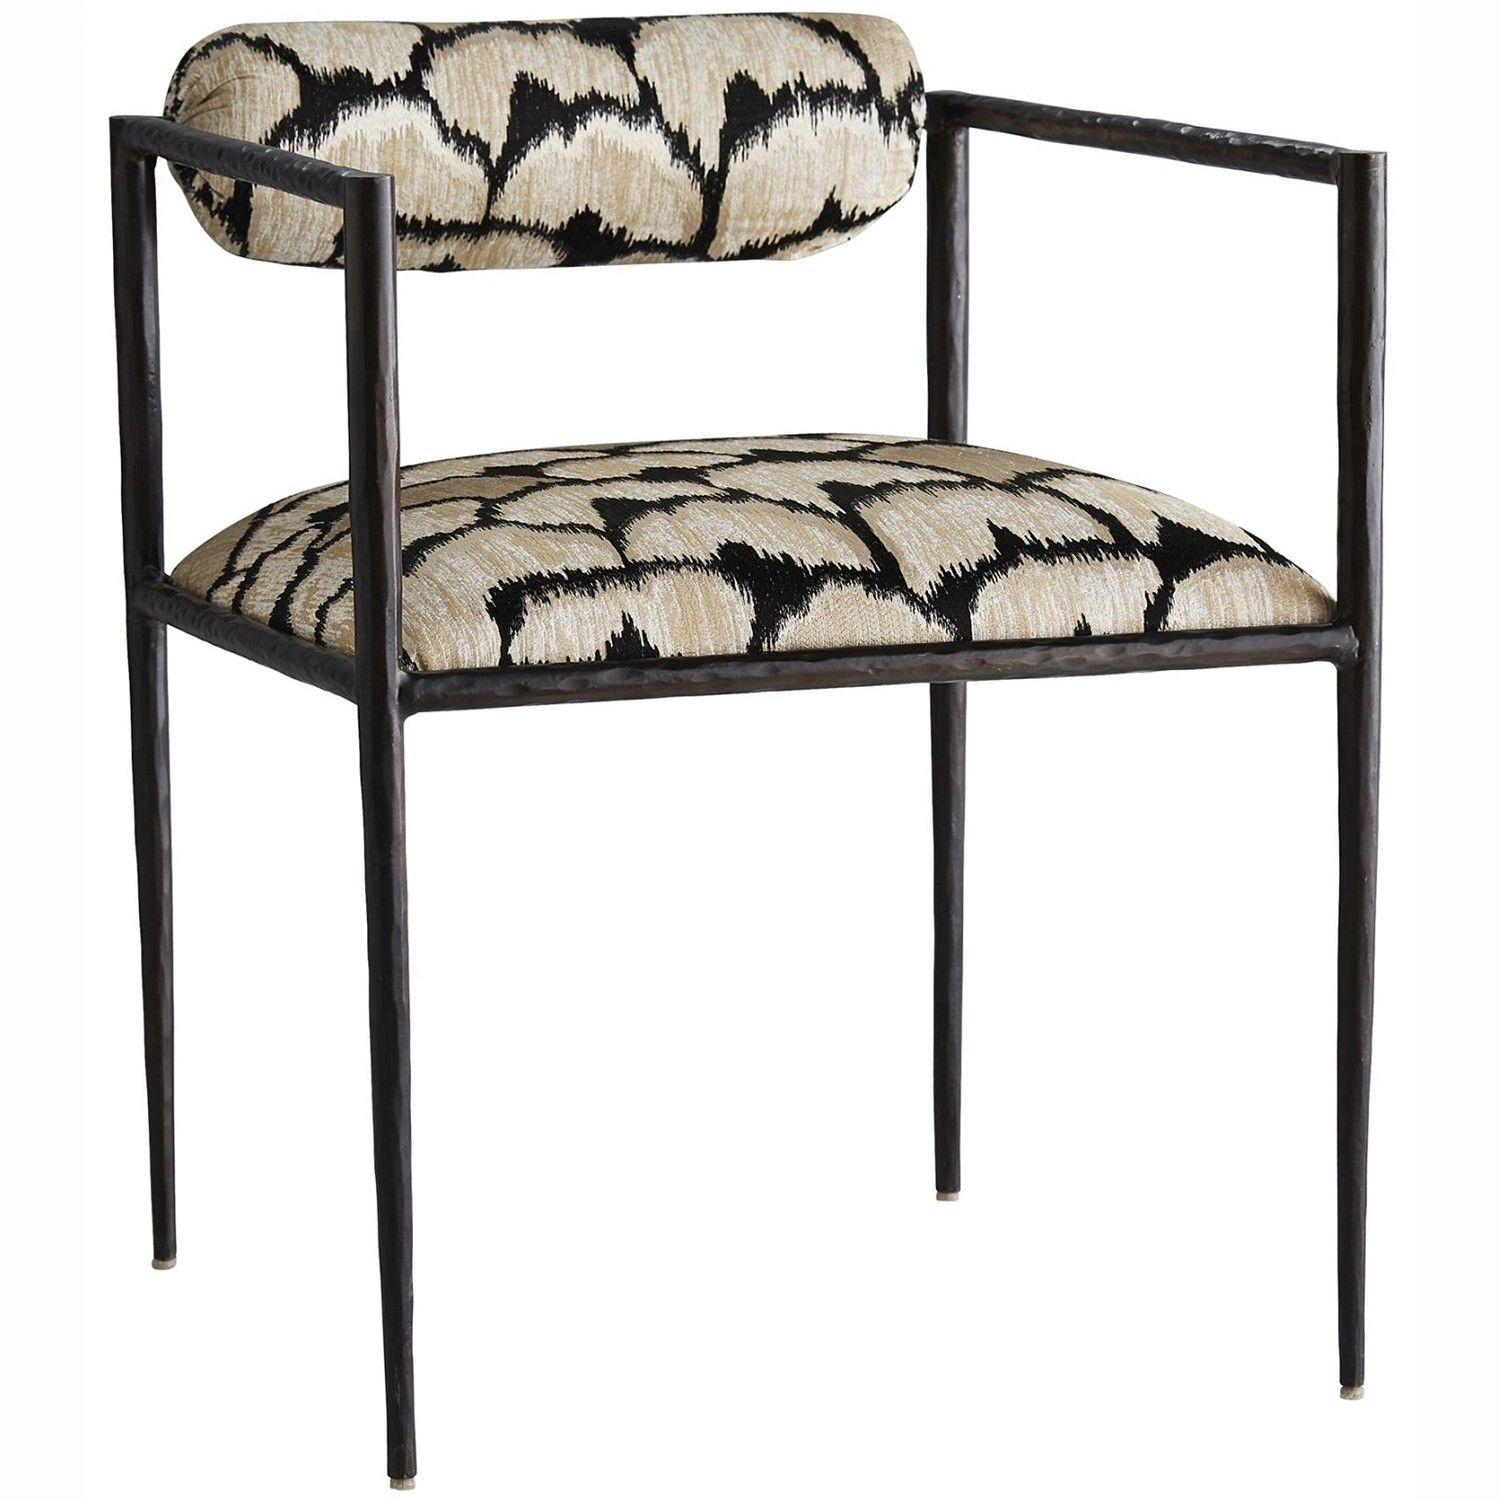 Arteriors Barbana Chair Ocelot Embroidery Furniture